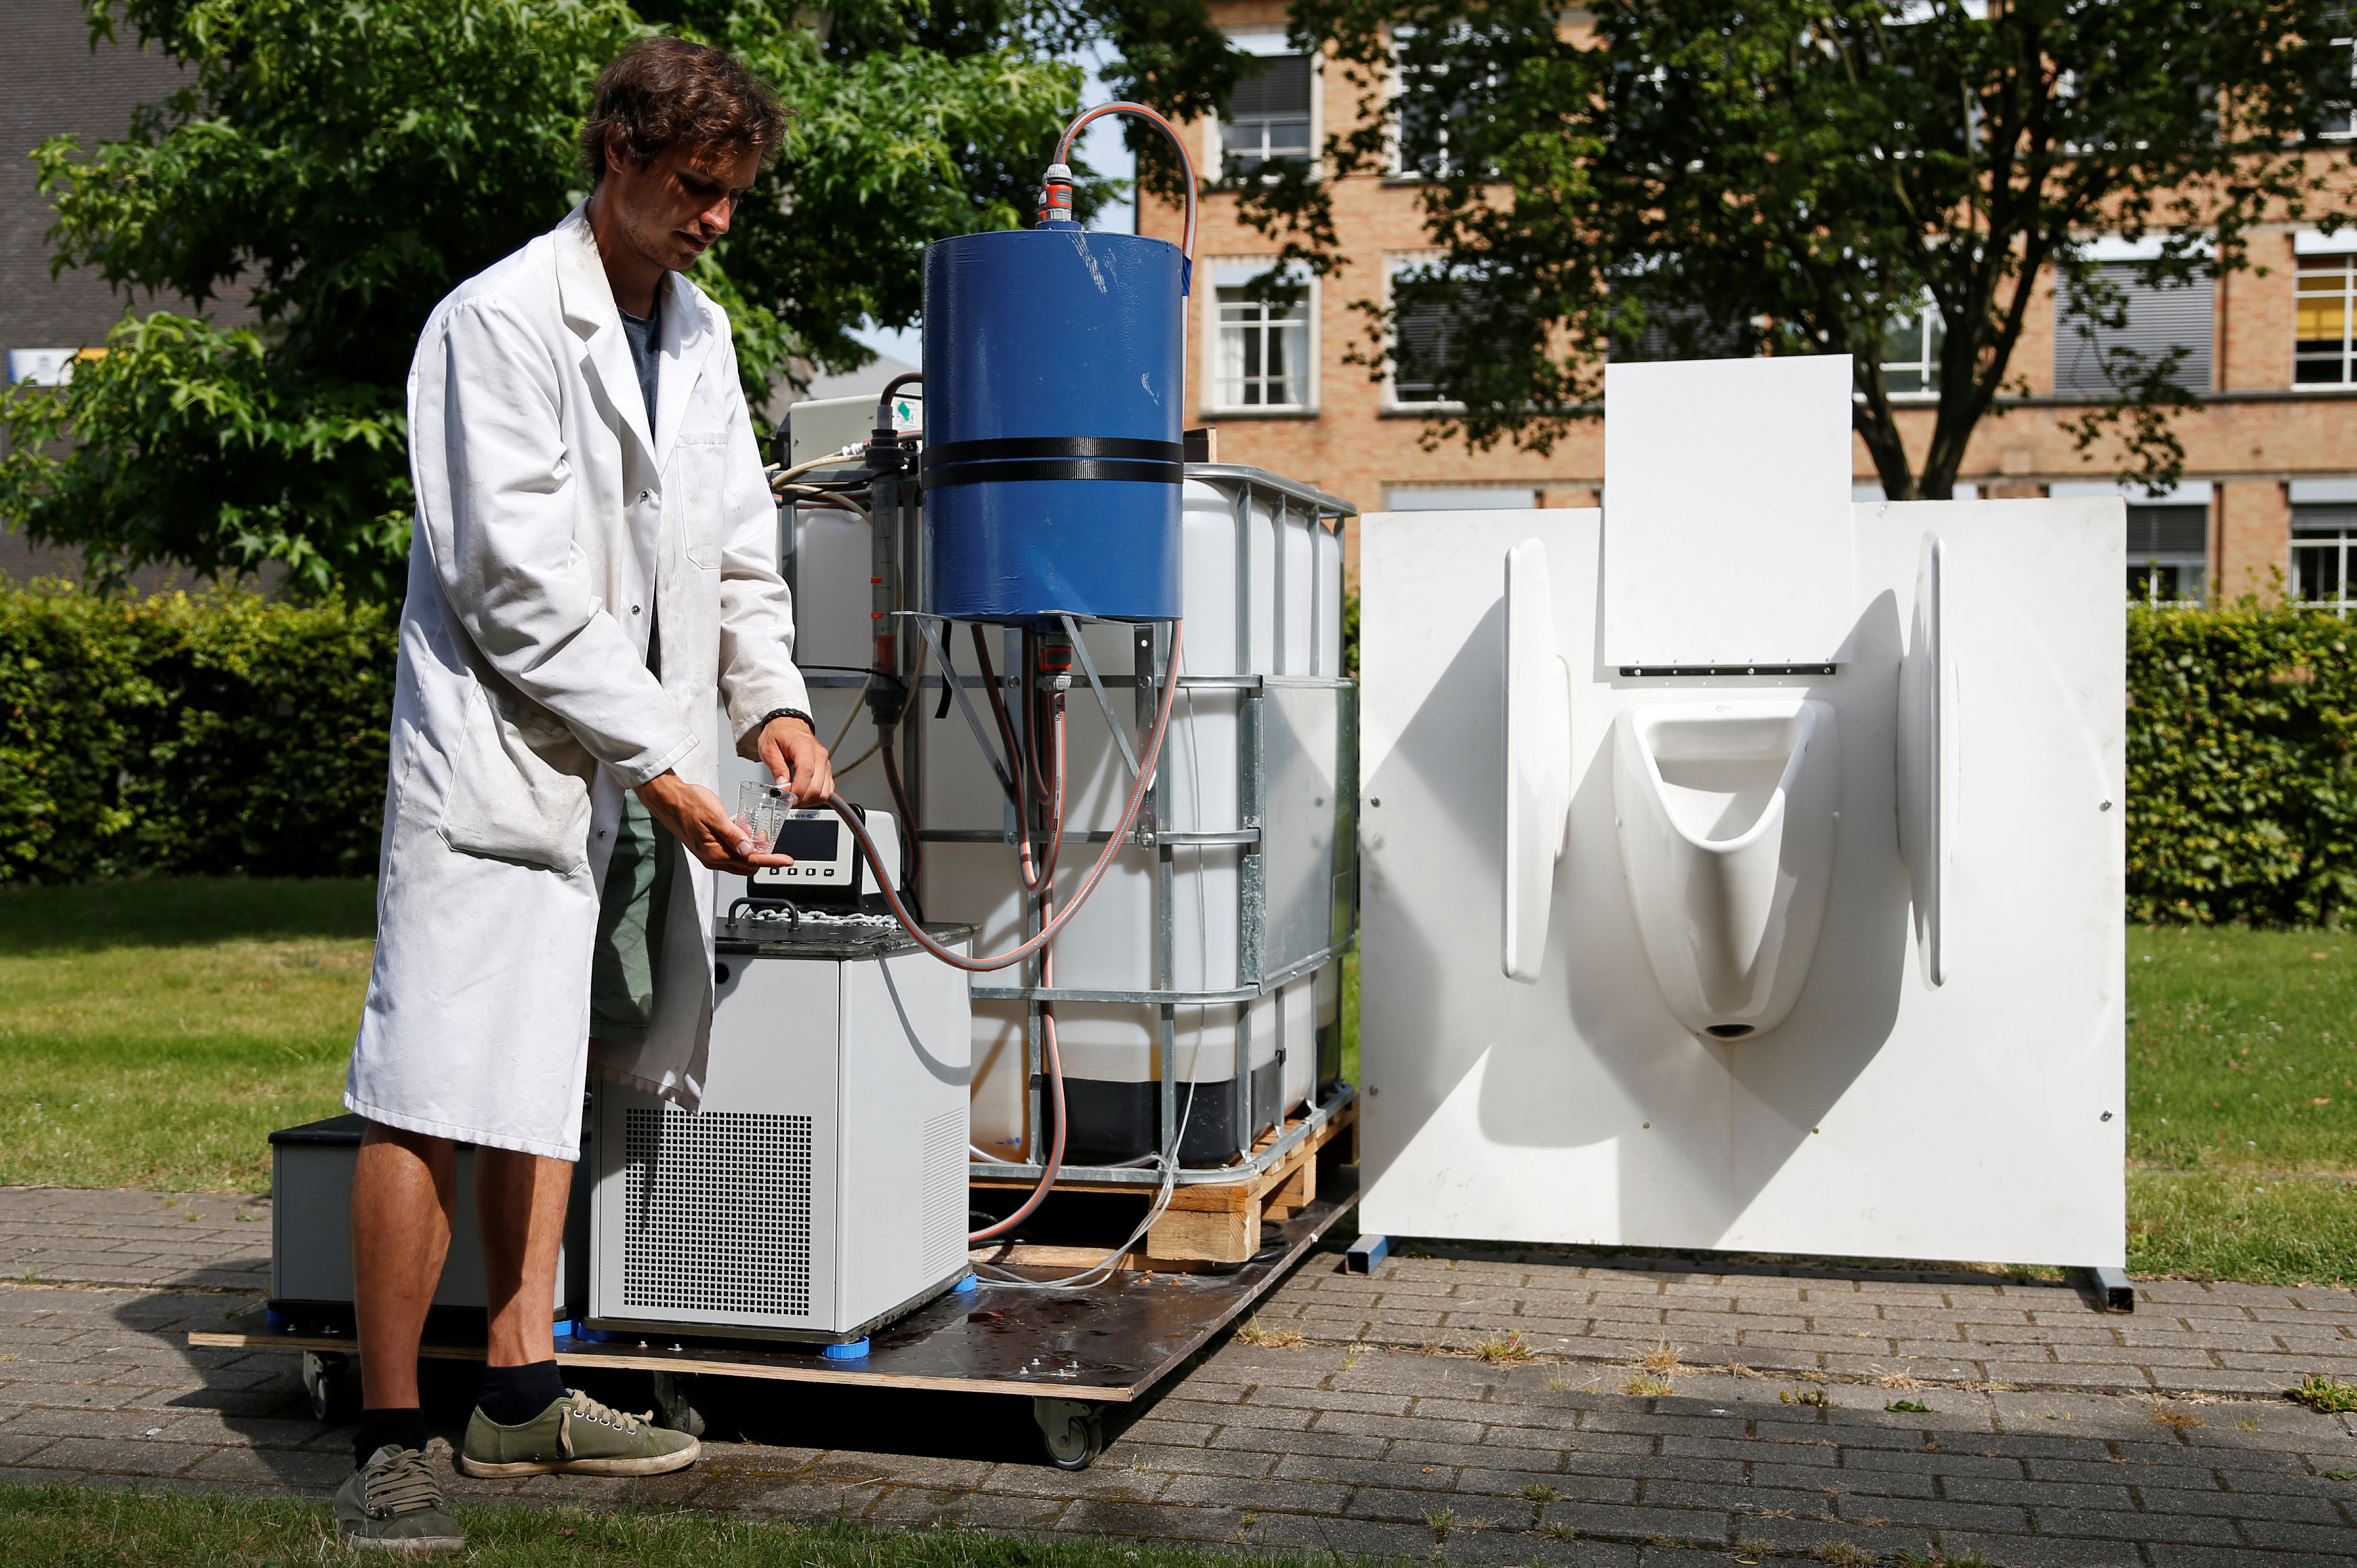 Belgian scientist Derese pours water from a machine that turns urine into drinkable water and fertilizer using solar energy, at the University of Ghent